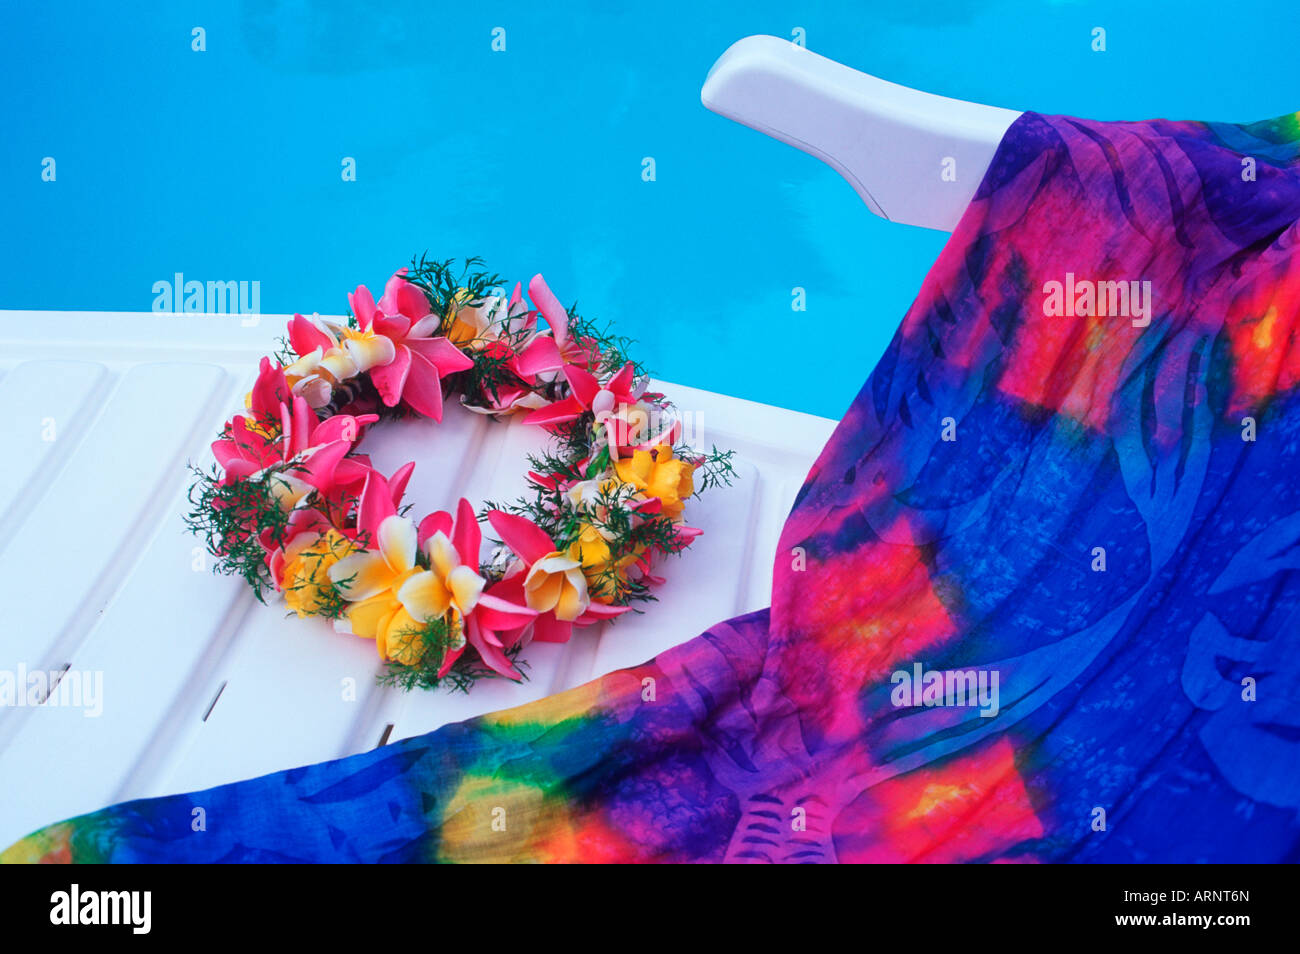 Cook Islands, South Pacific, Raratonga, floral lei on deck chair at poolside - Stock Image